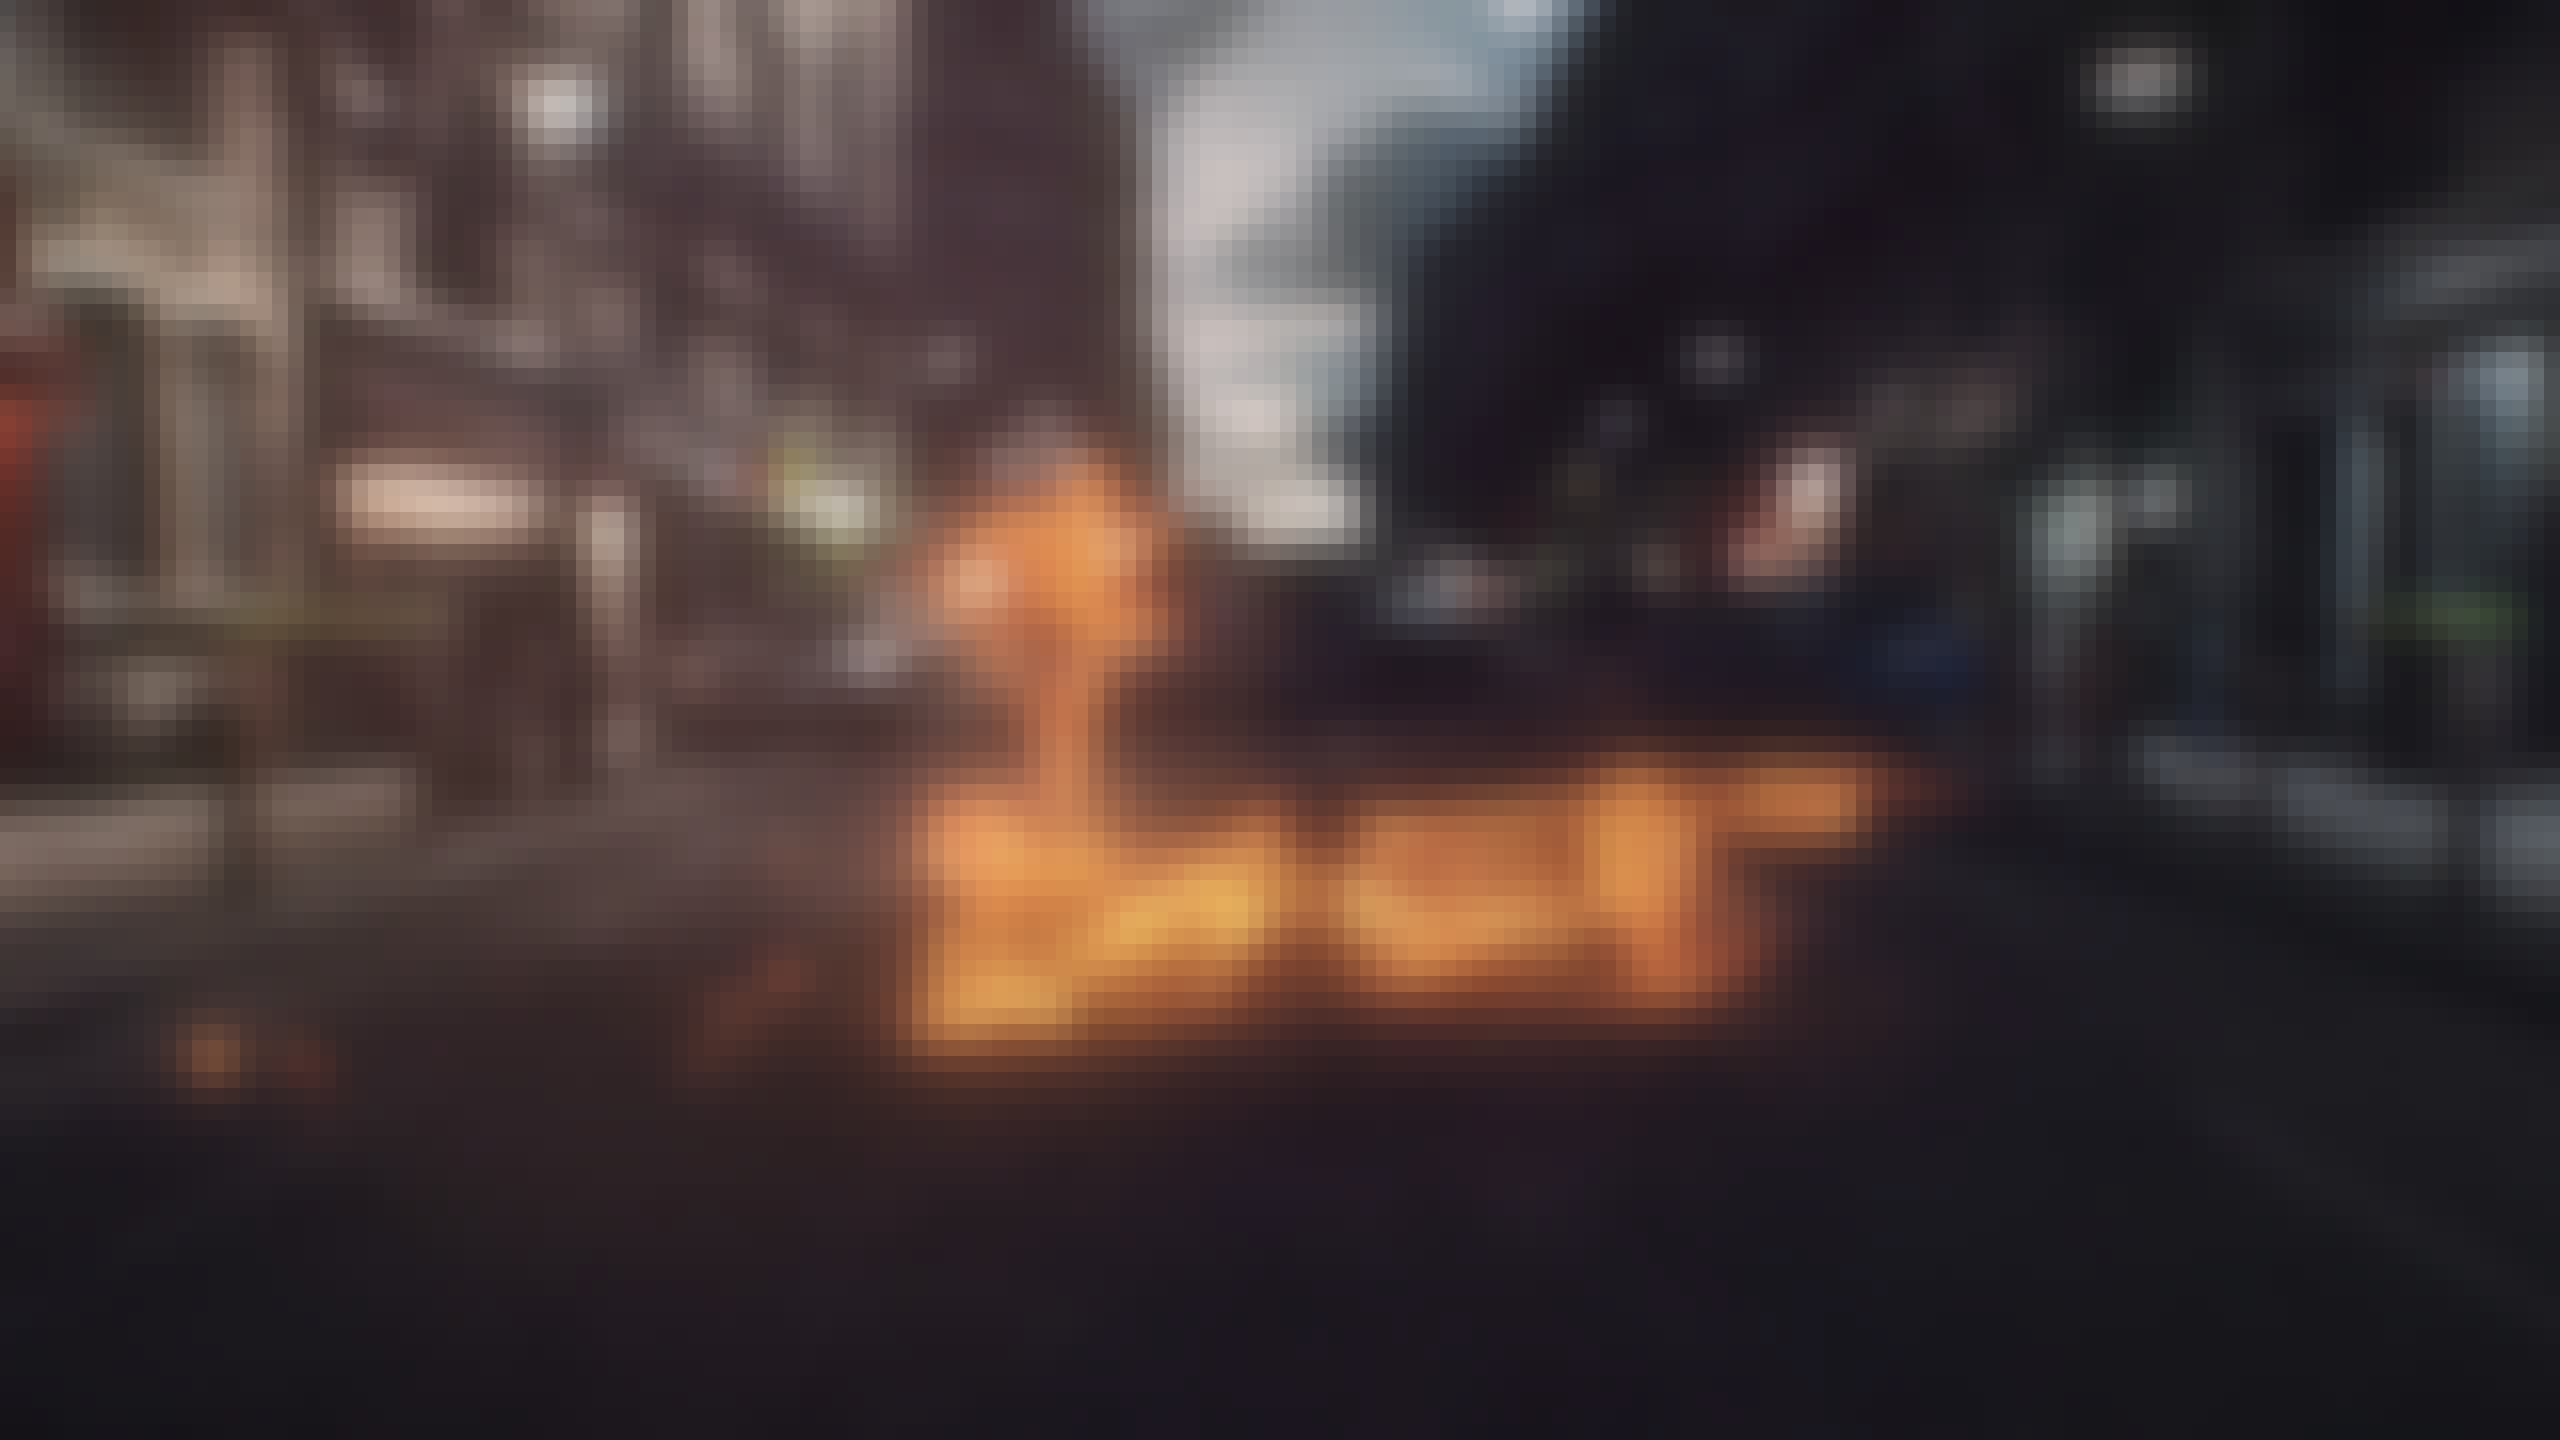 Extract of the project : shapes of lights fighting on the street